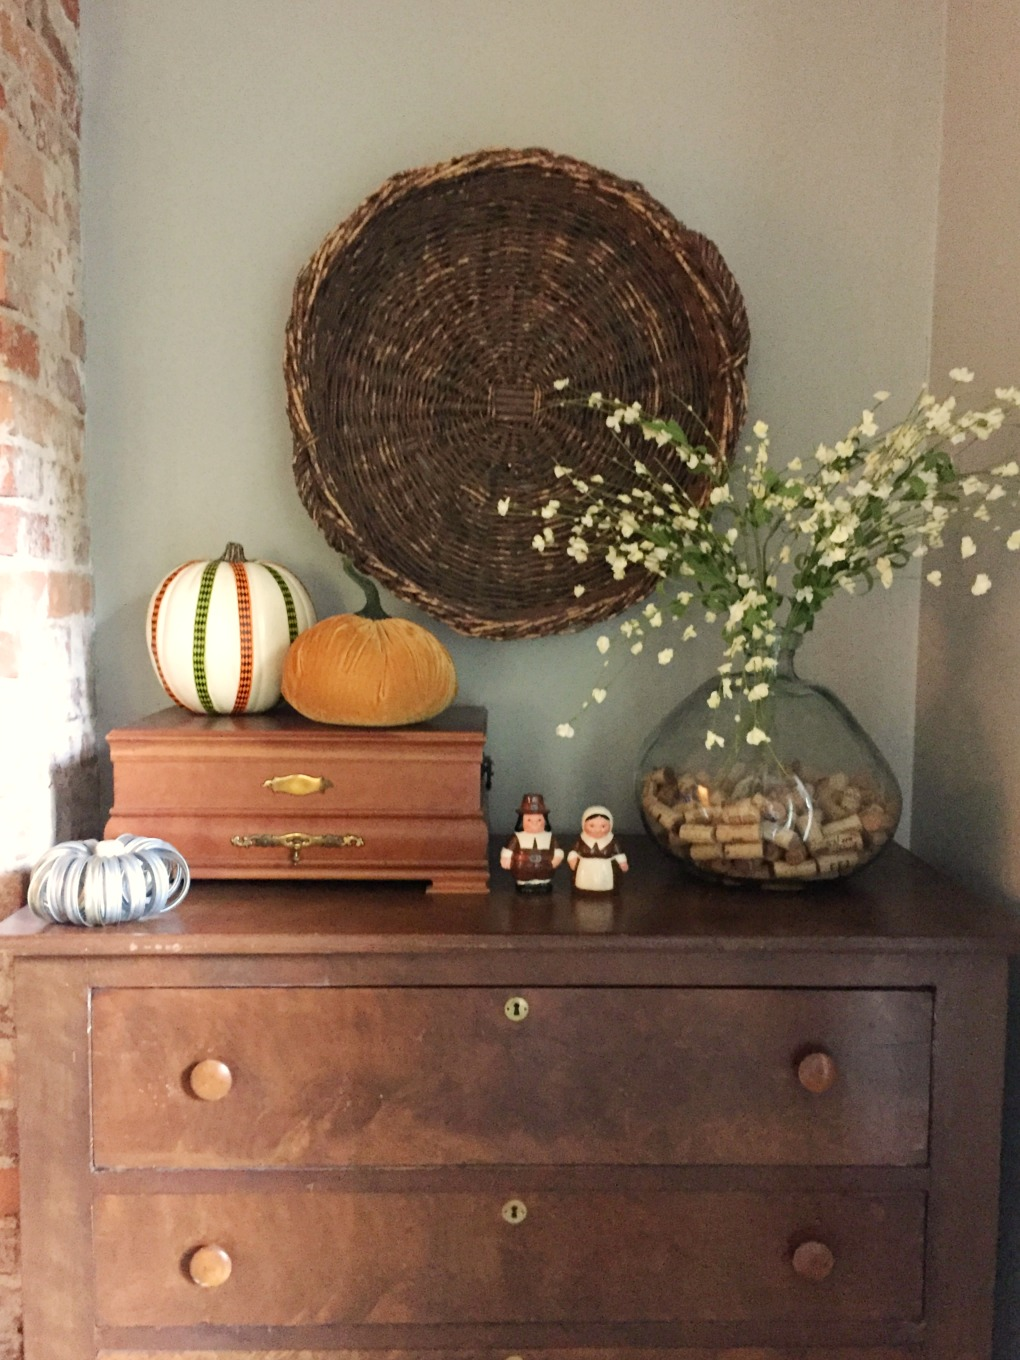 Pumpkins and pilgrims for fall decor - thediybungalow.com